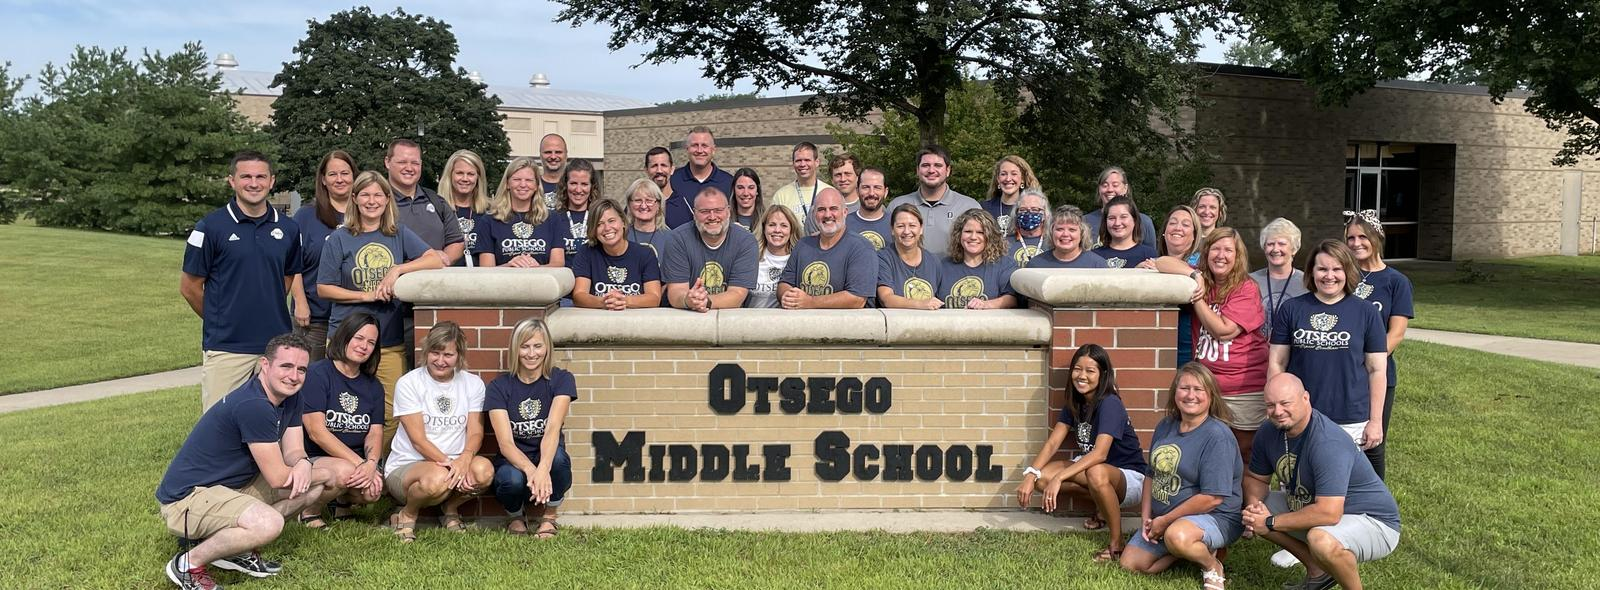 MS staff picture outside at the OMS sign